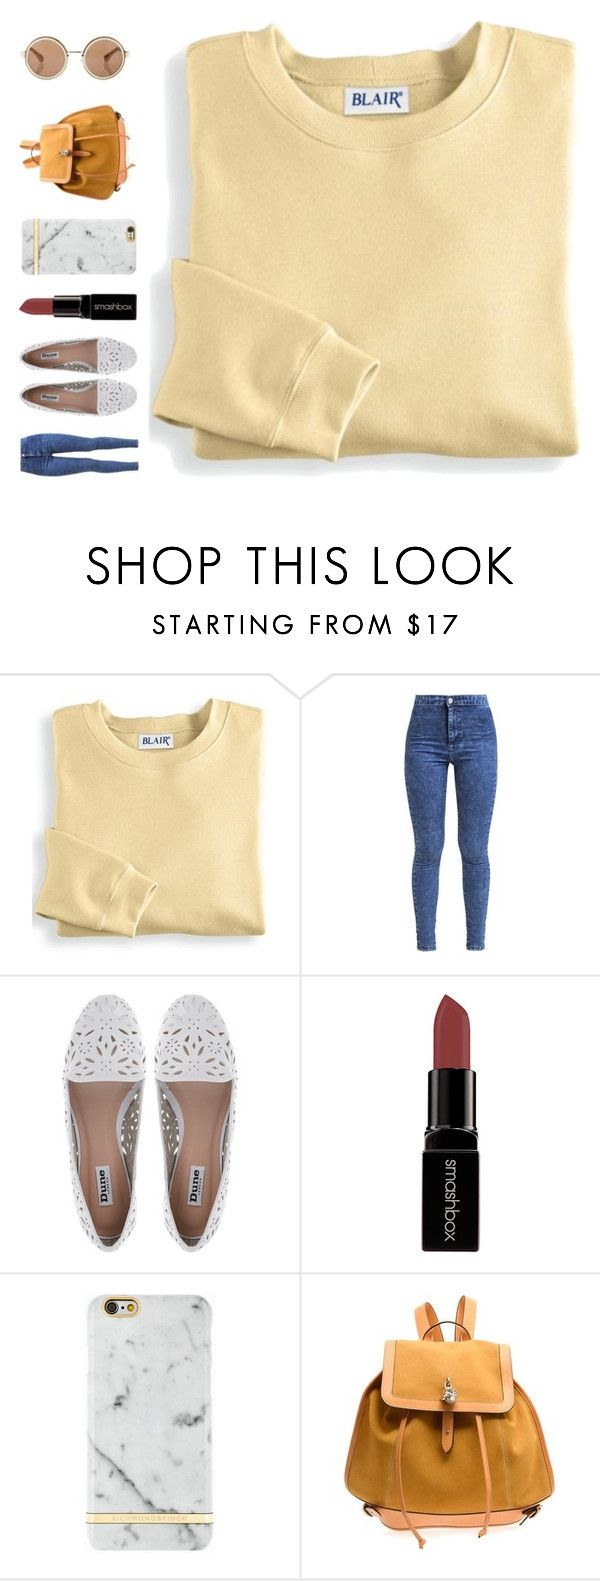 """""""kiss of fire"""" by ouchm4rvel ❤ liked on Polyvore featuring Blair, Miss Selfridge, Dune, Smashbox, Richmond & Finch and Alexander McQueen"""